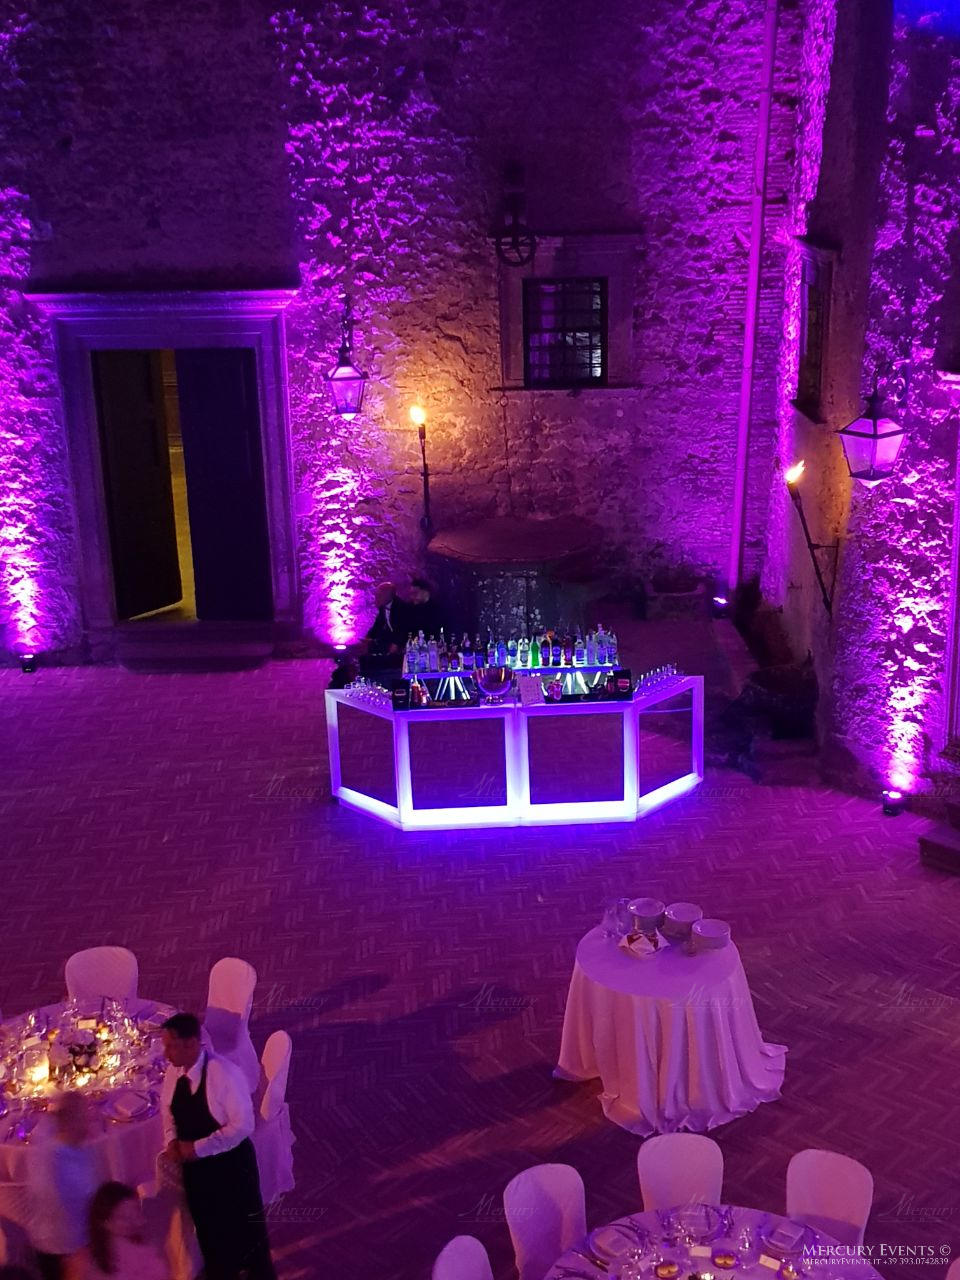 Wedding - Castello Odelschalchi di Bracciano - Mercury Events 7